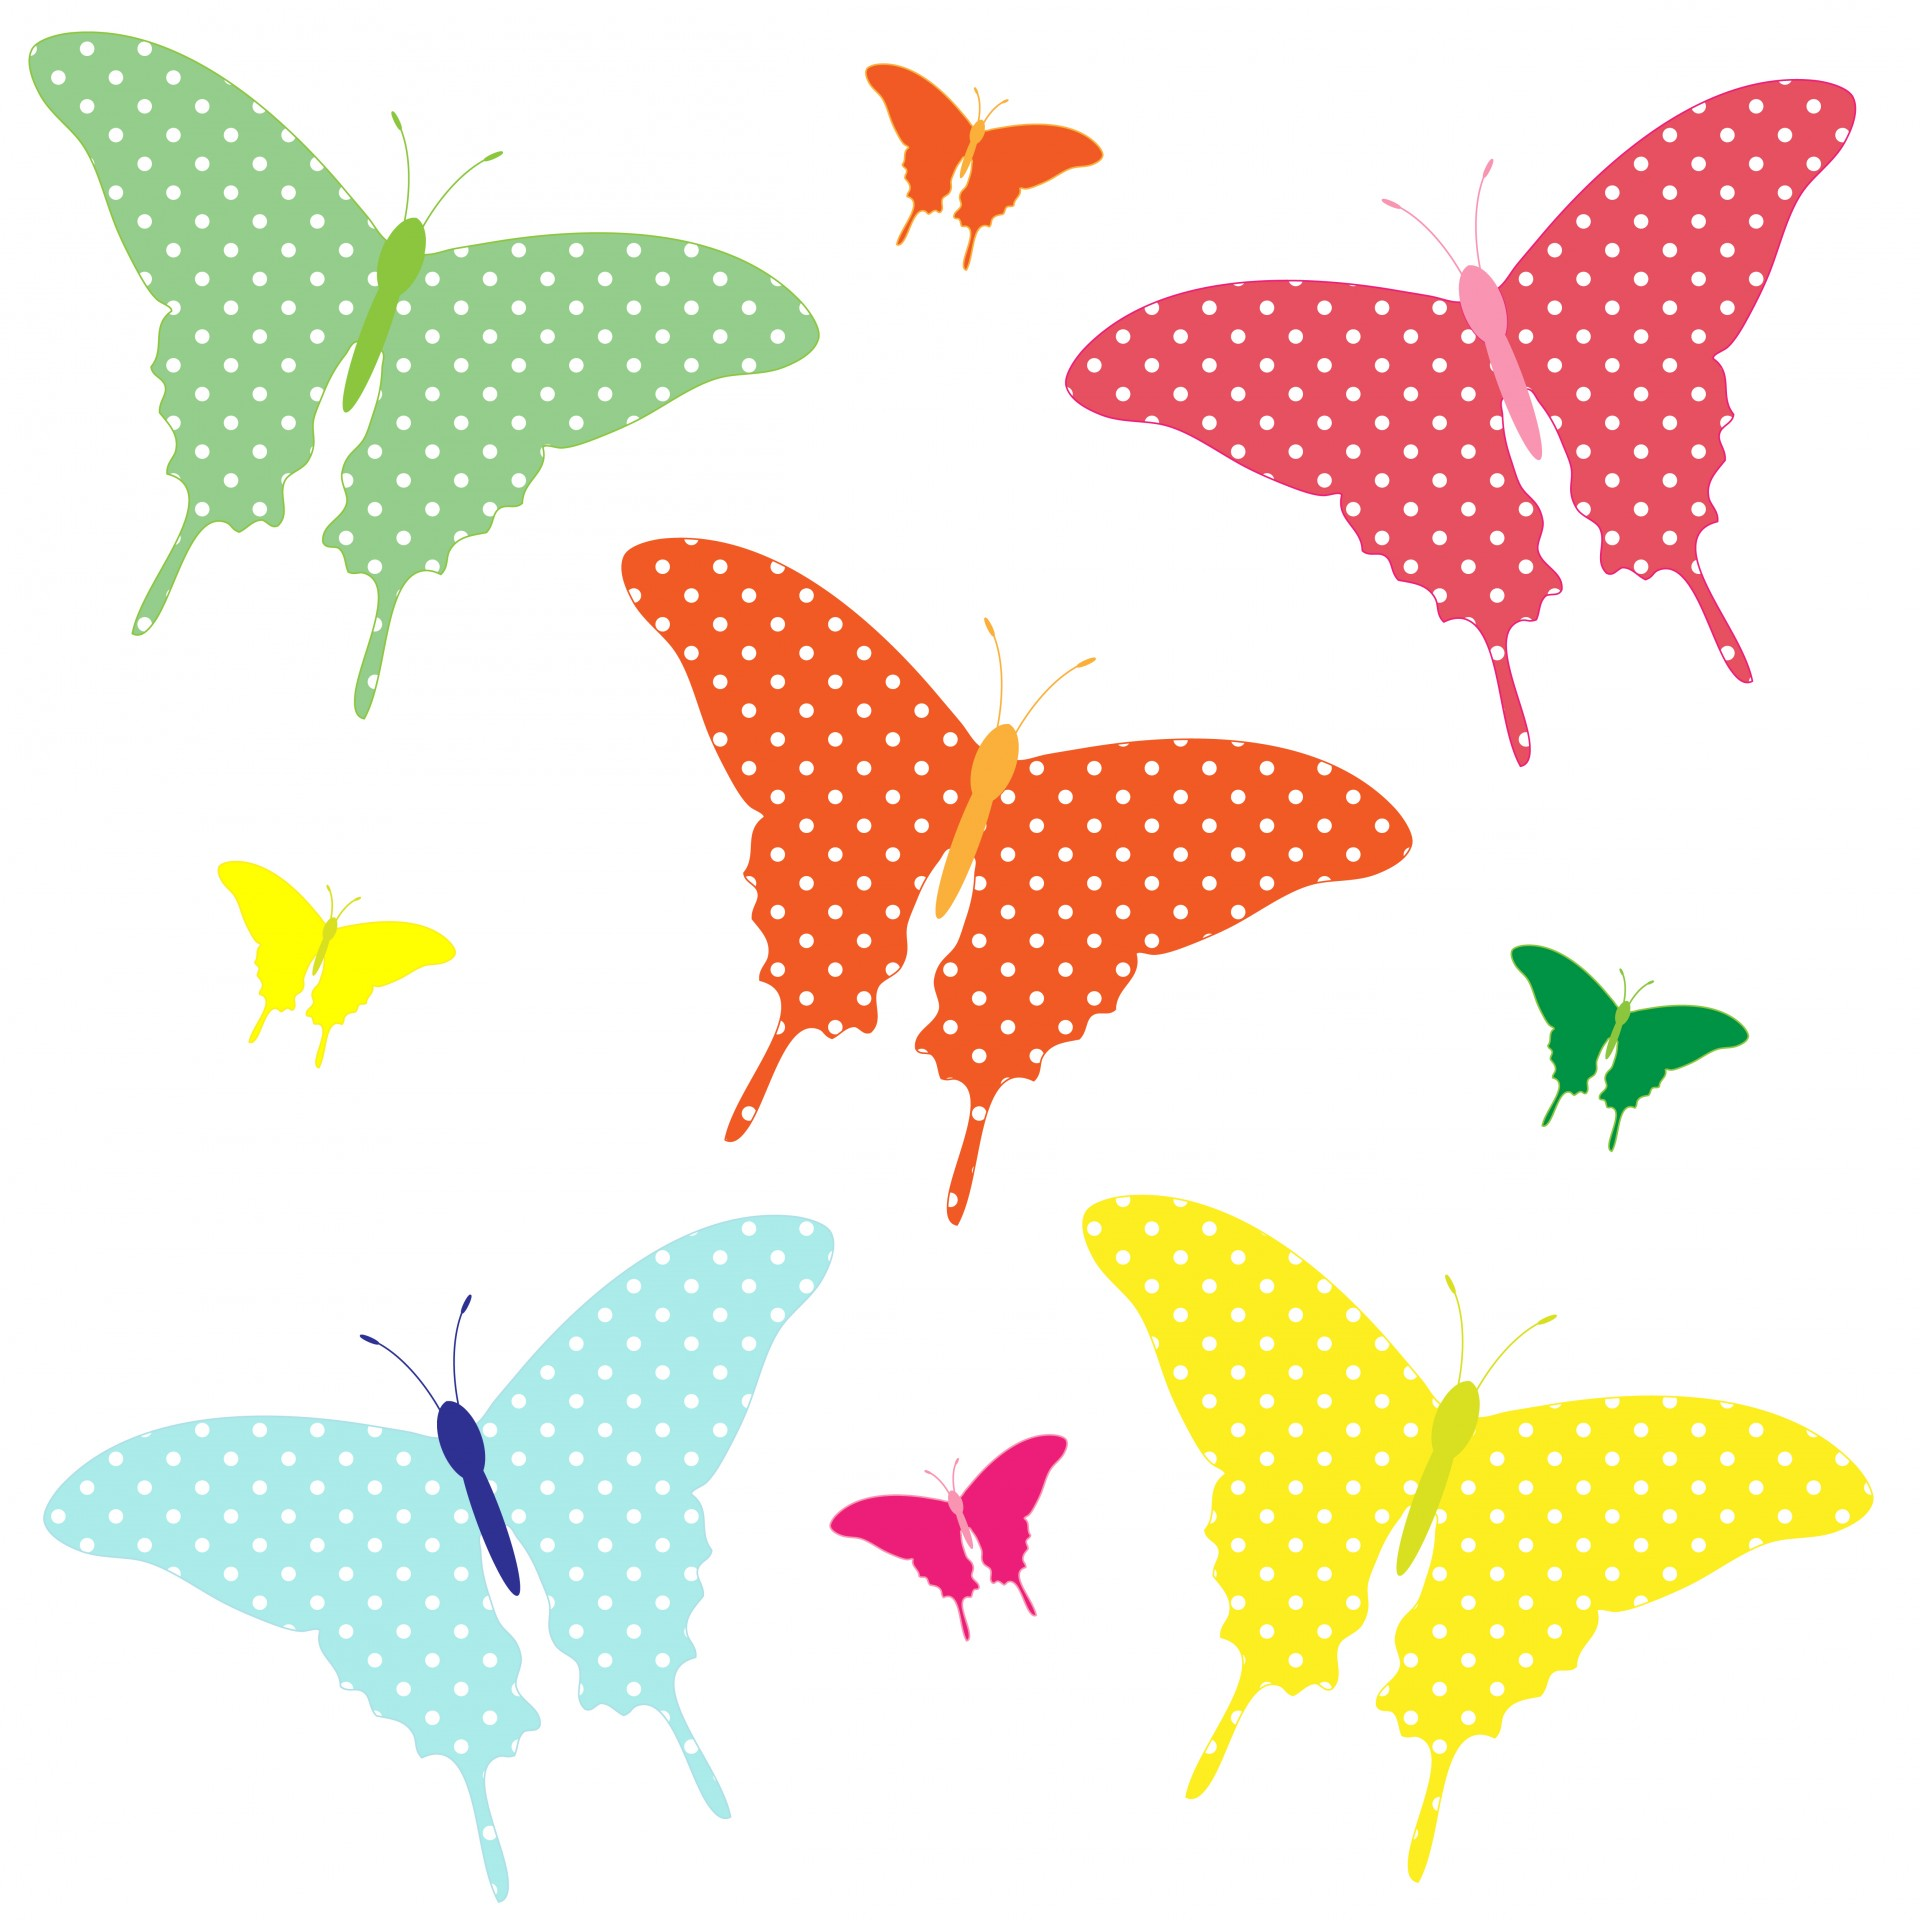 1920x1920 Colorful Butterflies Clipart Free Stock Photo